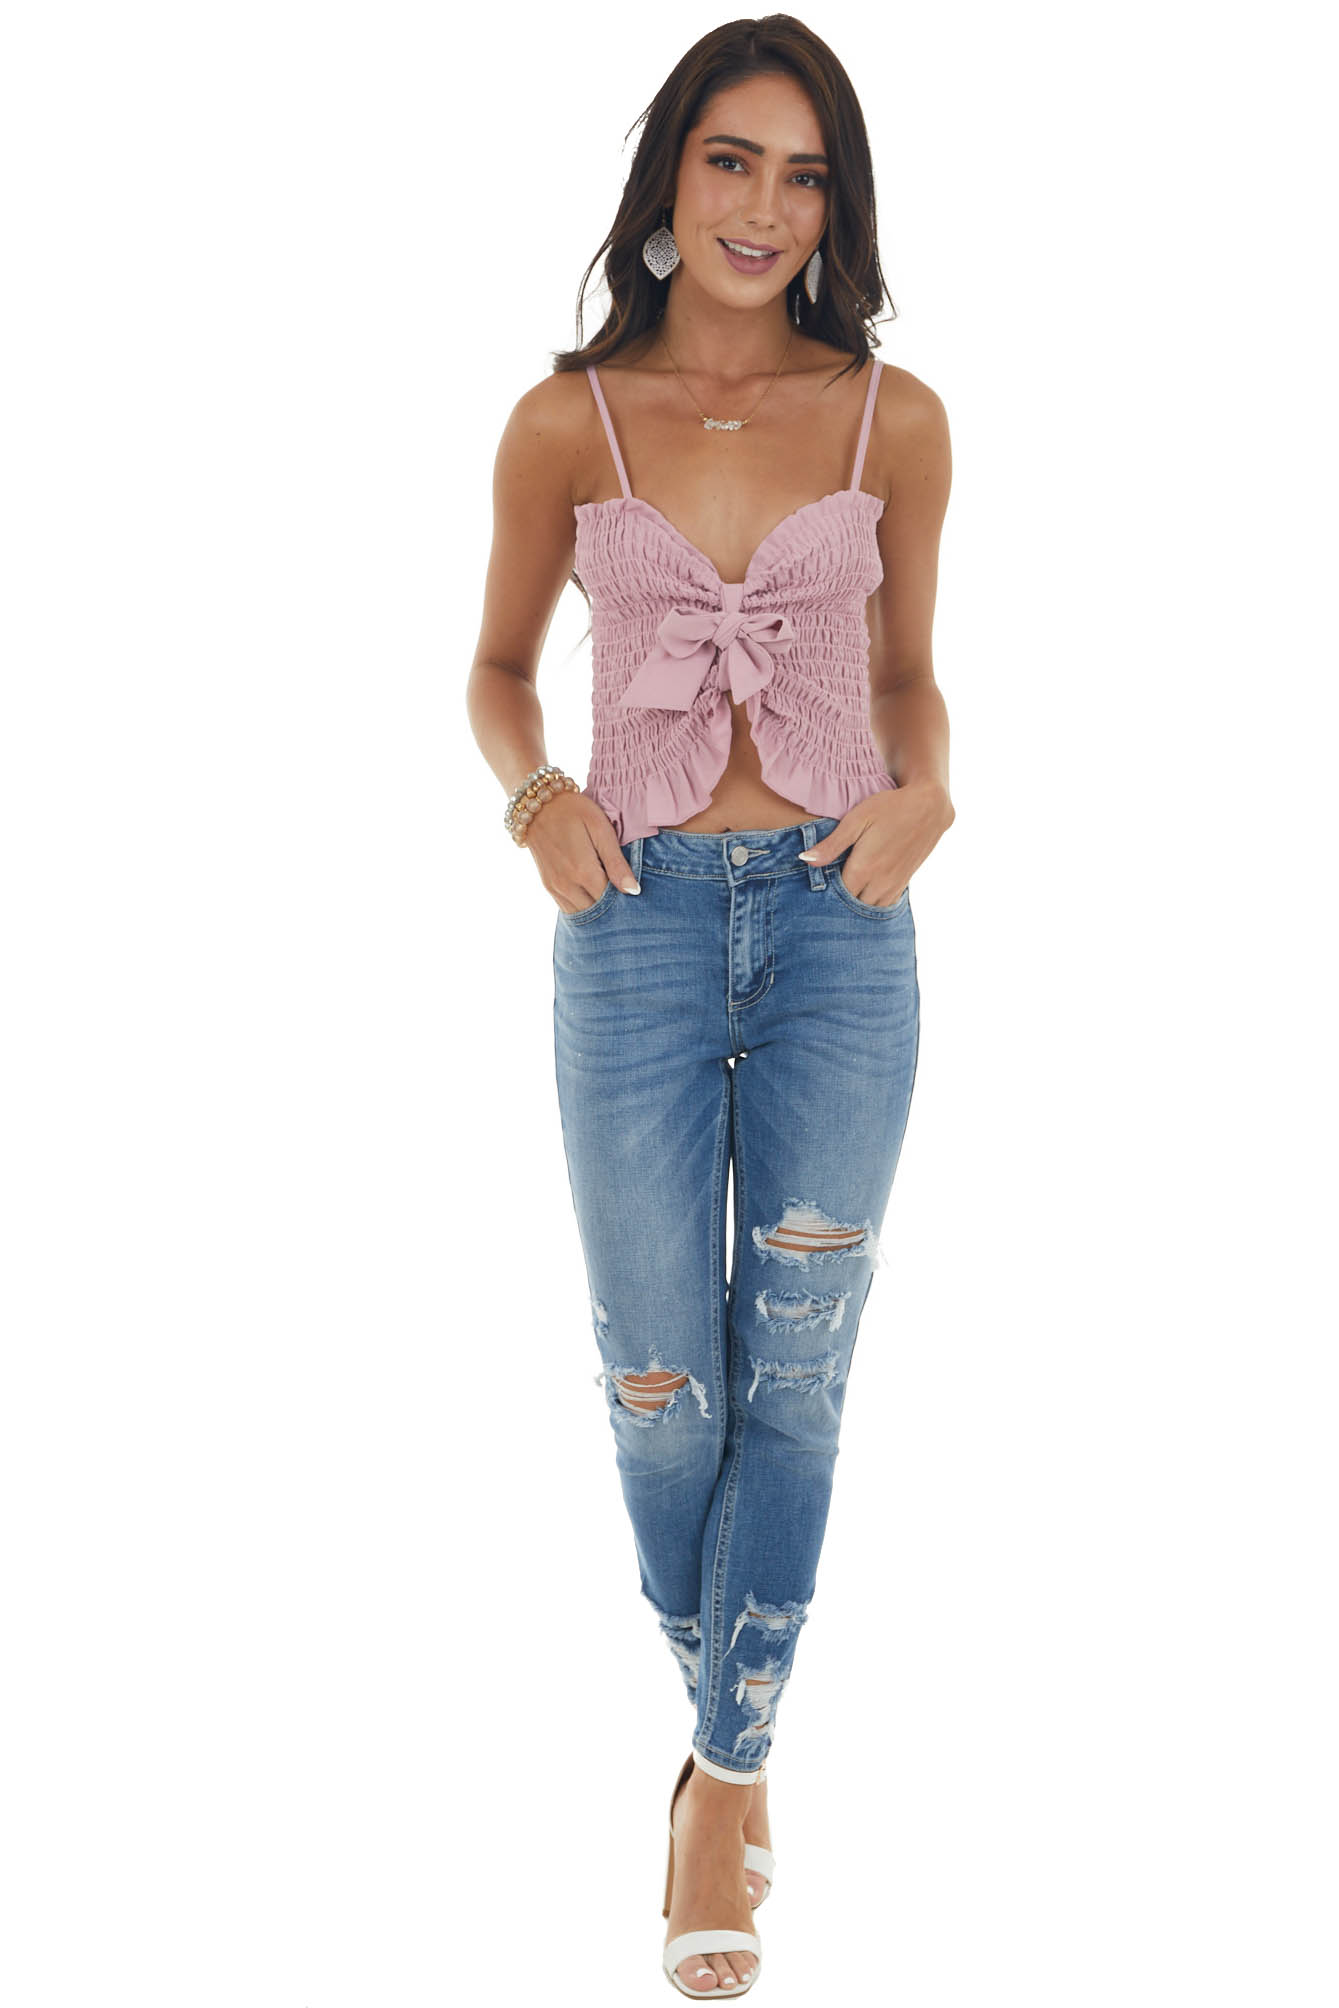 Dusty Blush Smocked Front Tie Cropped Tank Top